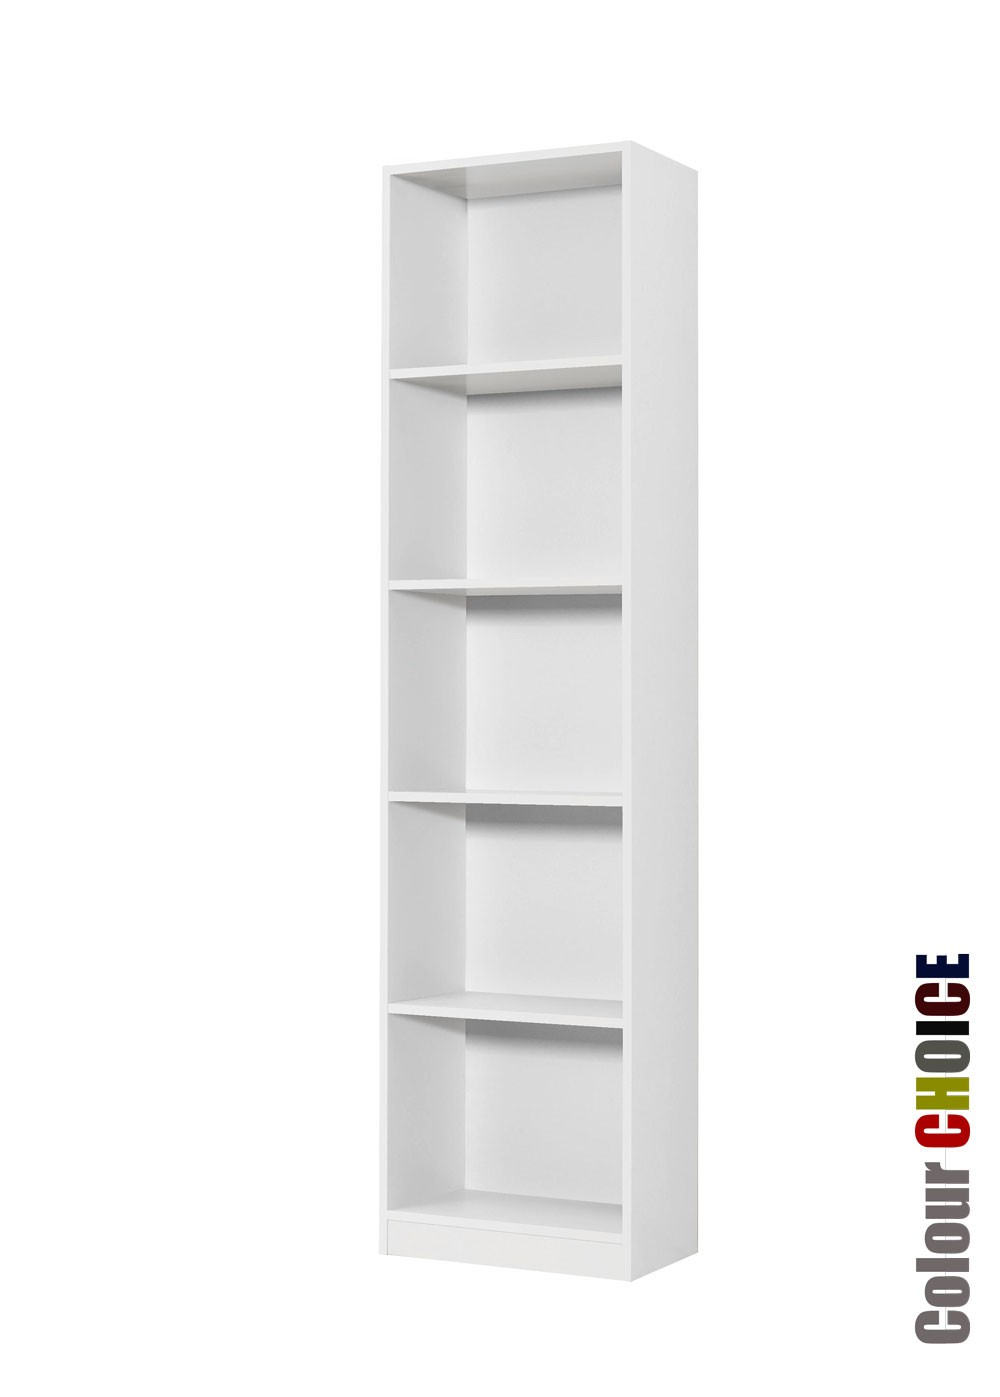 Rauch Cello Shelving Unit